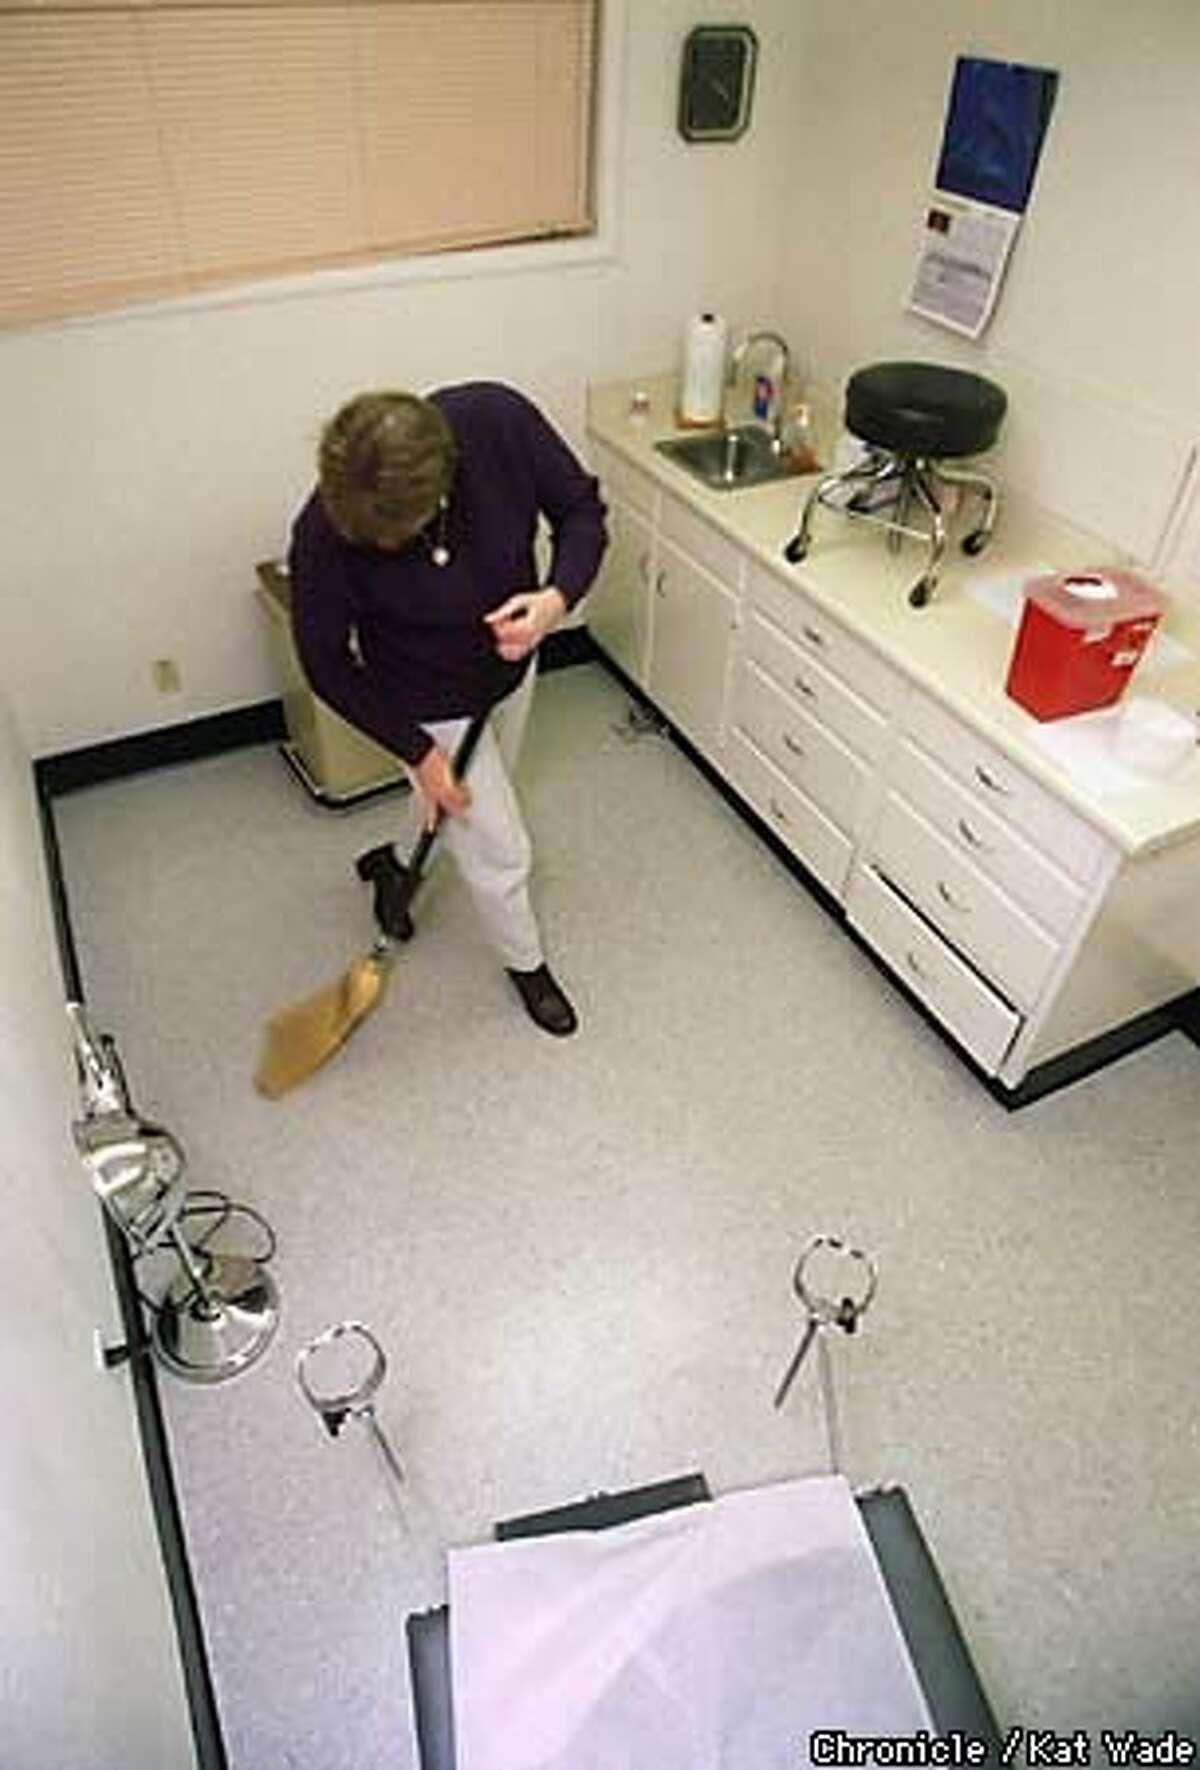 A health care worker cleaned up after abortion screening day at the Women's Health Specialists Clinic in Redding. Chronicle Photo by Kat Wade